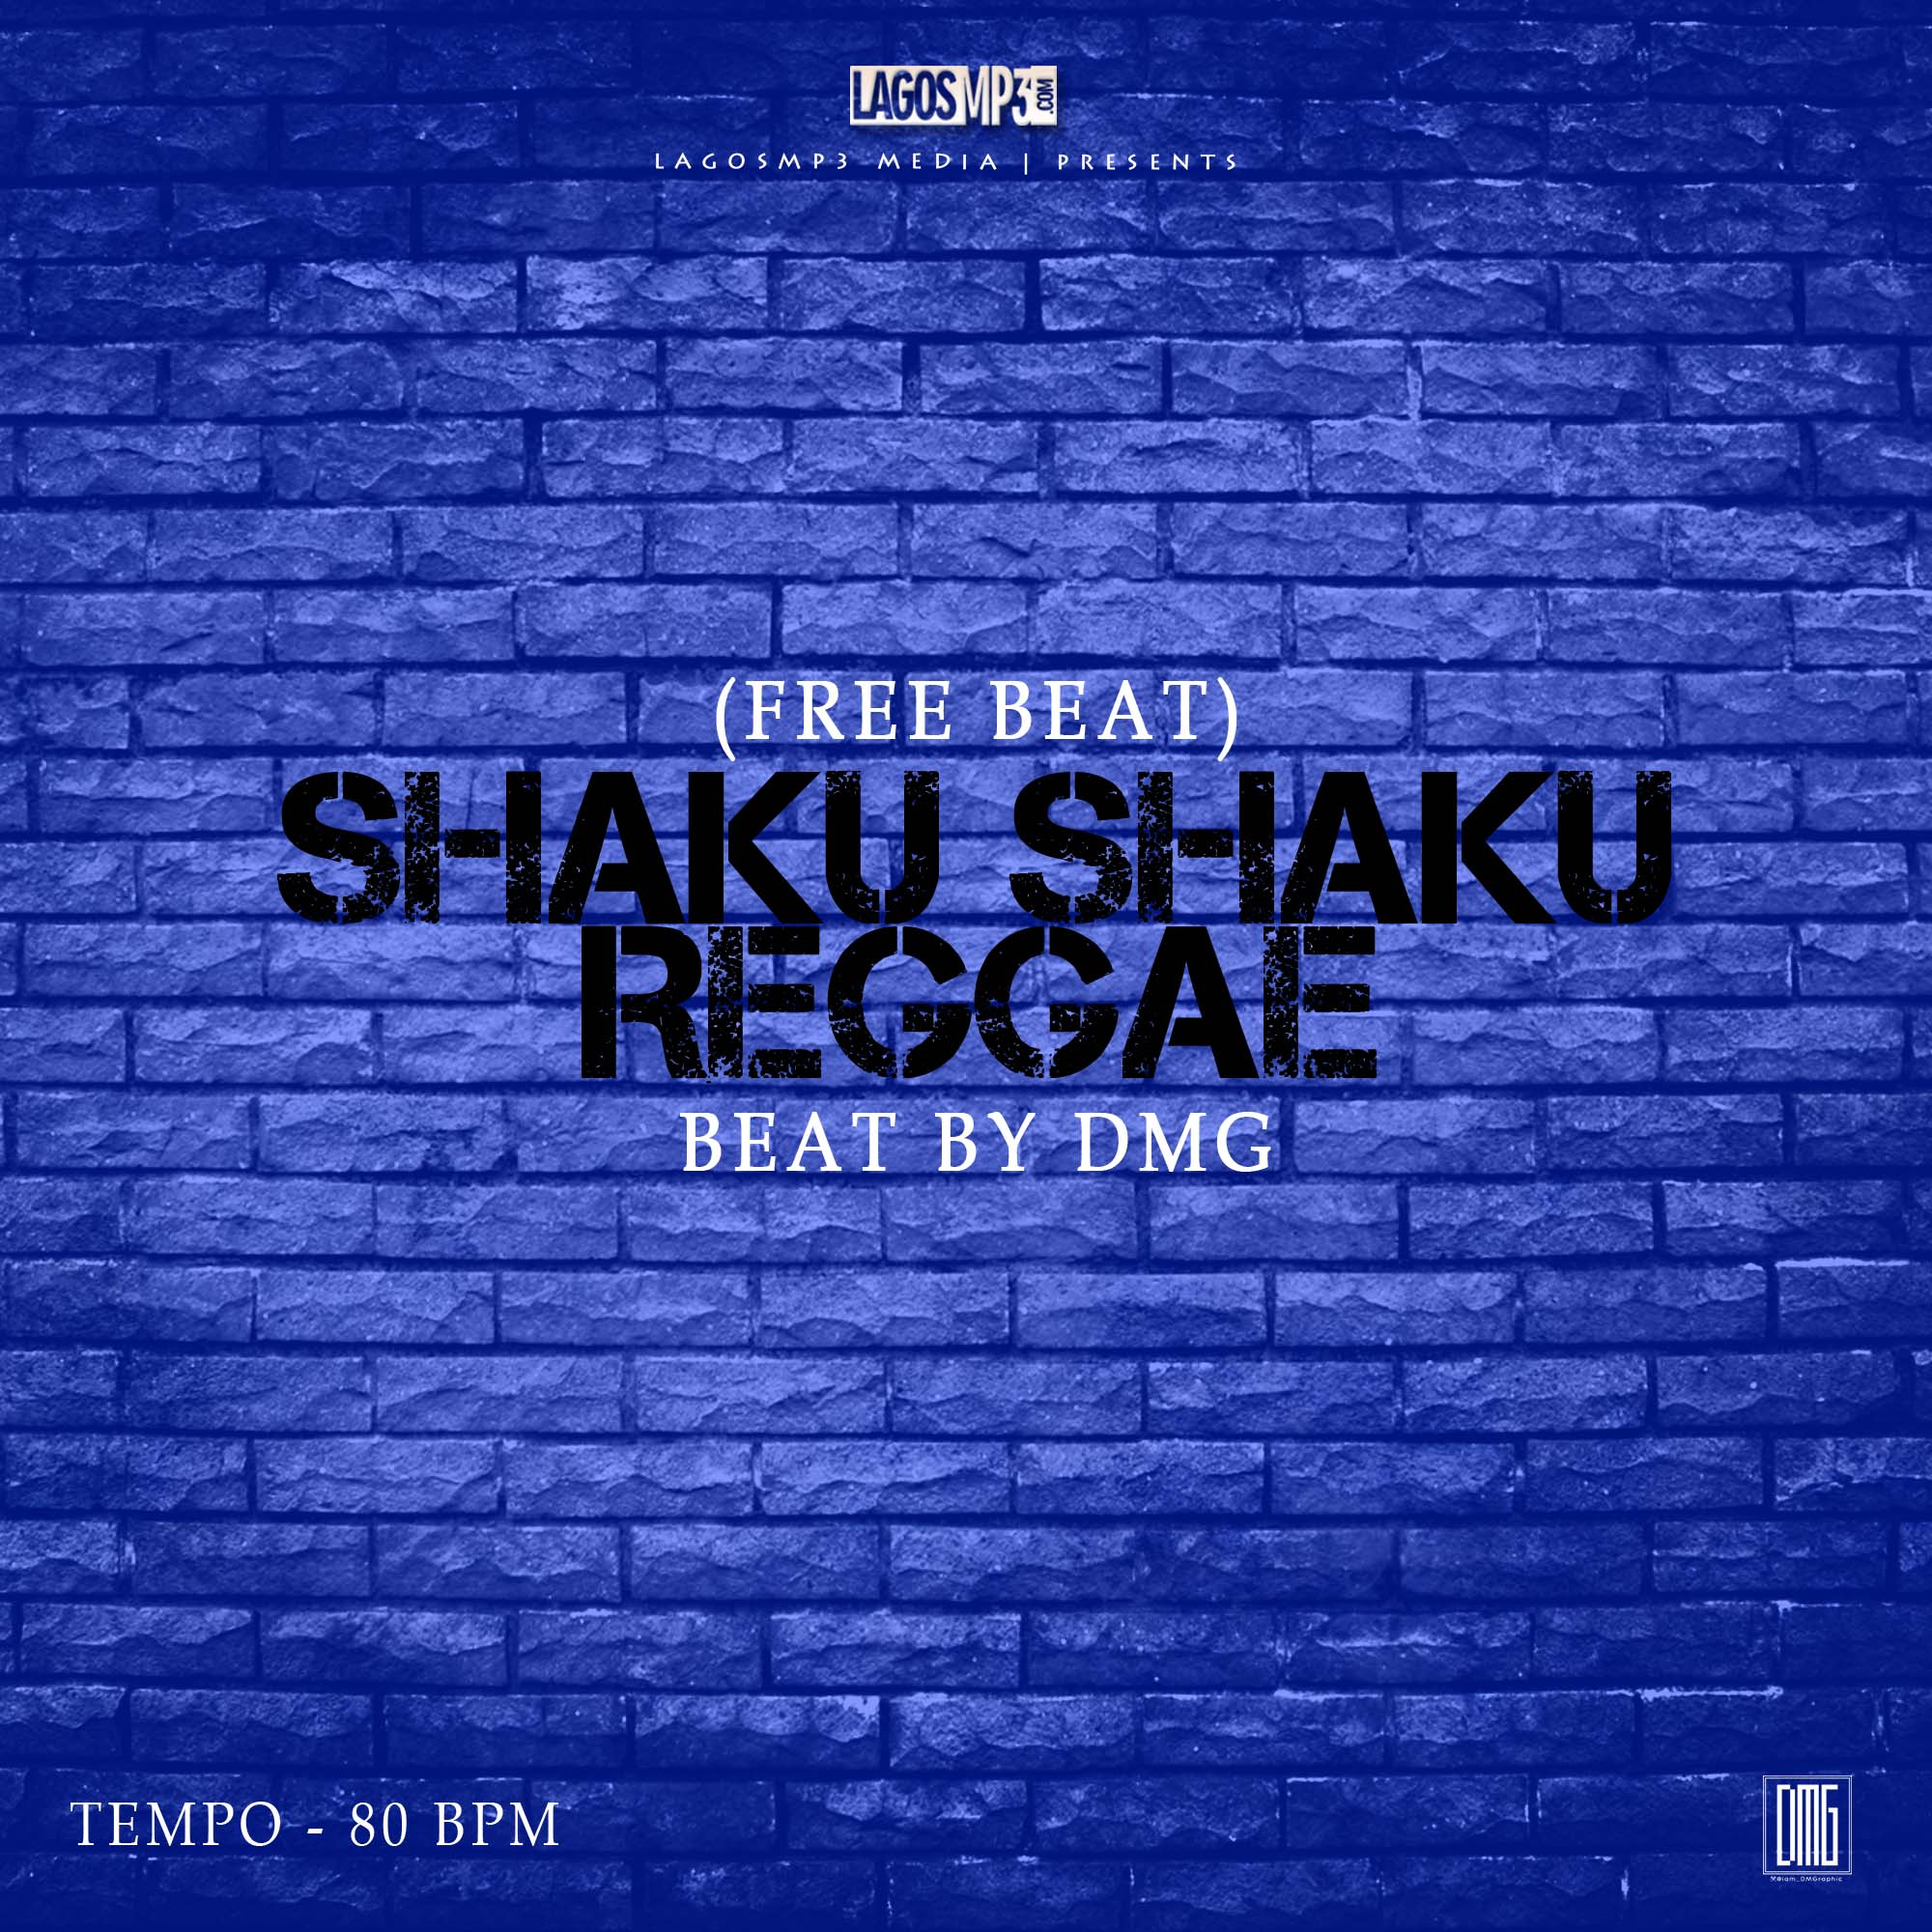 Freebeat Shaku Shaku Reggae (Prod. by DMG)